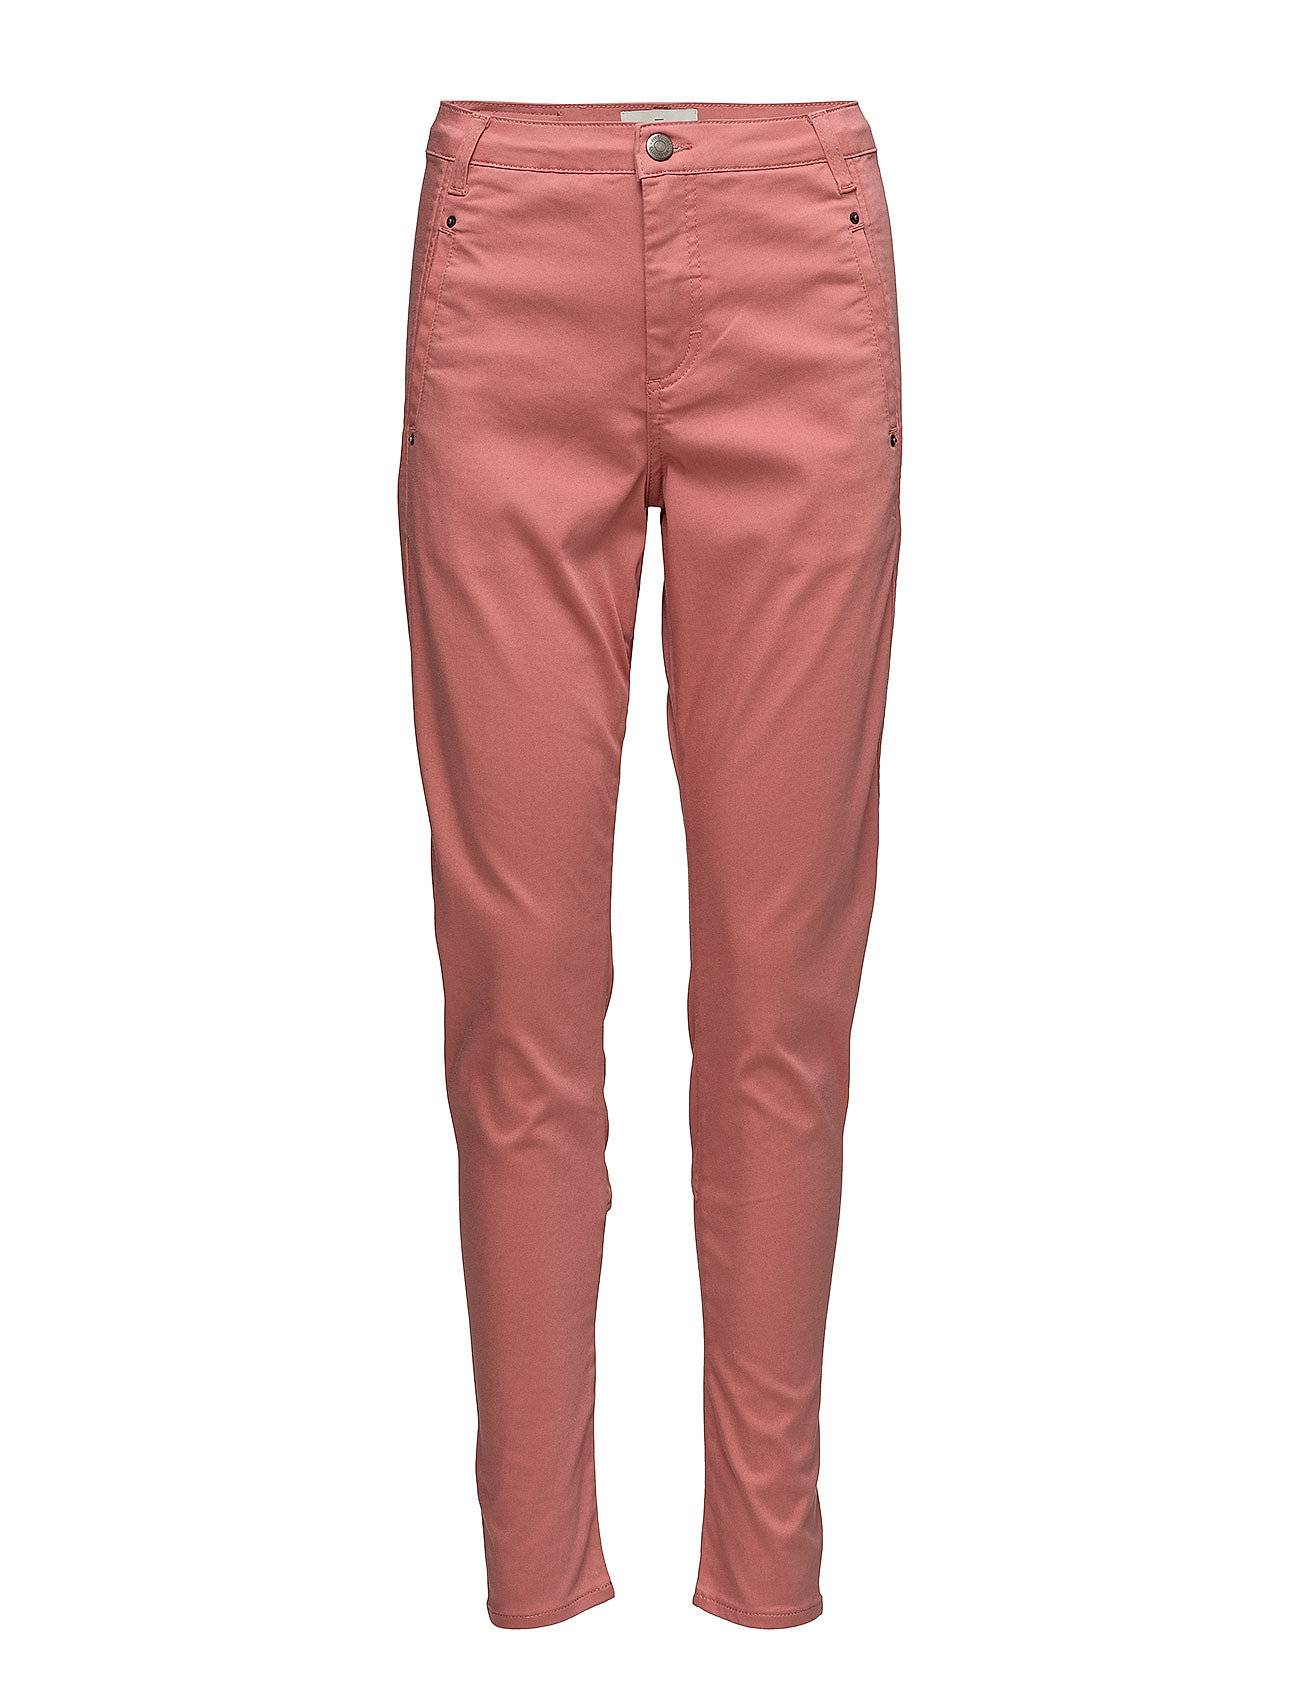 FIVEUNITS Jolie 606 Rose, Pants